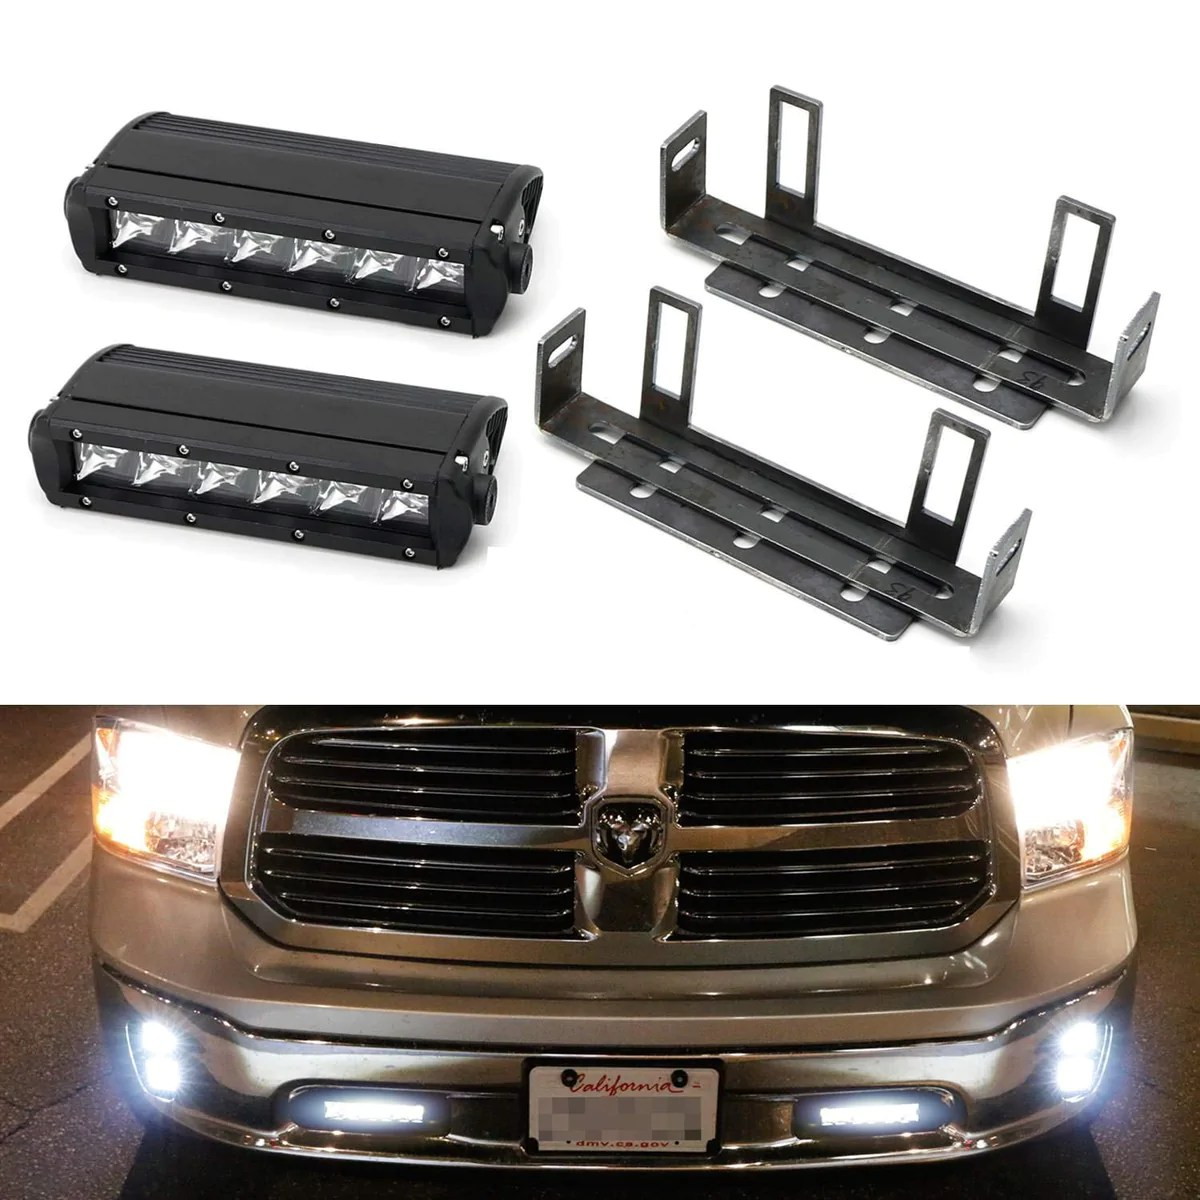 lower bumper led light bar kit for 2011 18 dodge ram 1500 includes 2 30w high power cree led lightbars tow hook opening area brackets on off switch  [ 1200 x 1200 Pixel ]